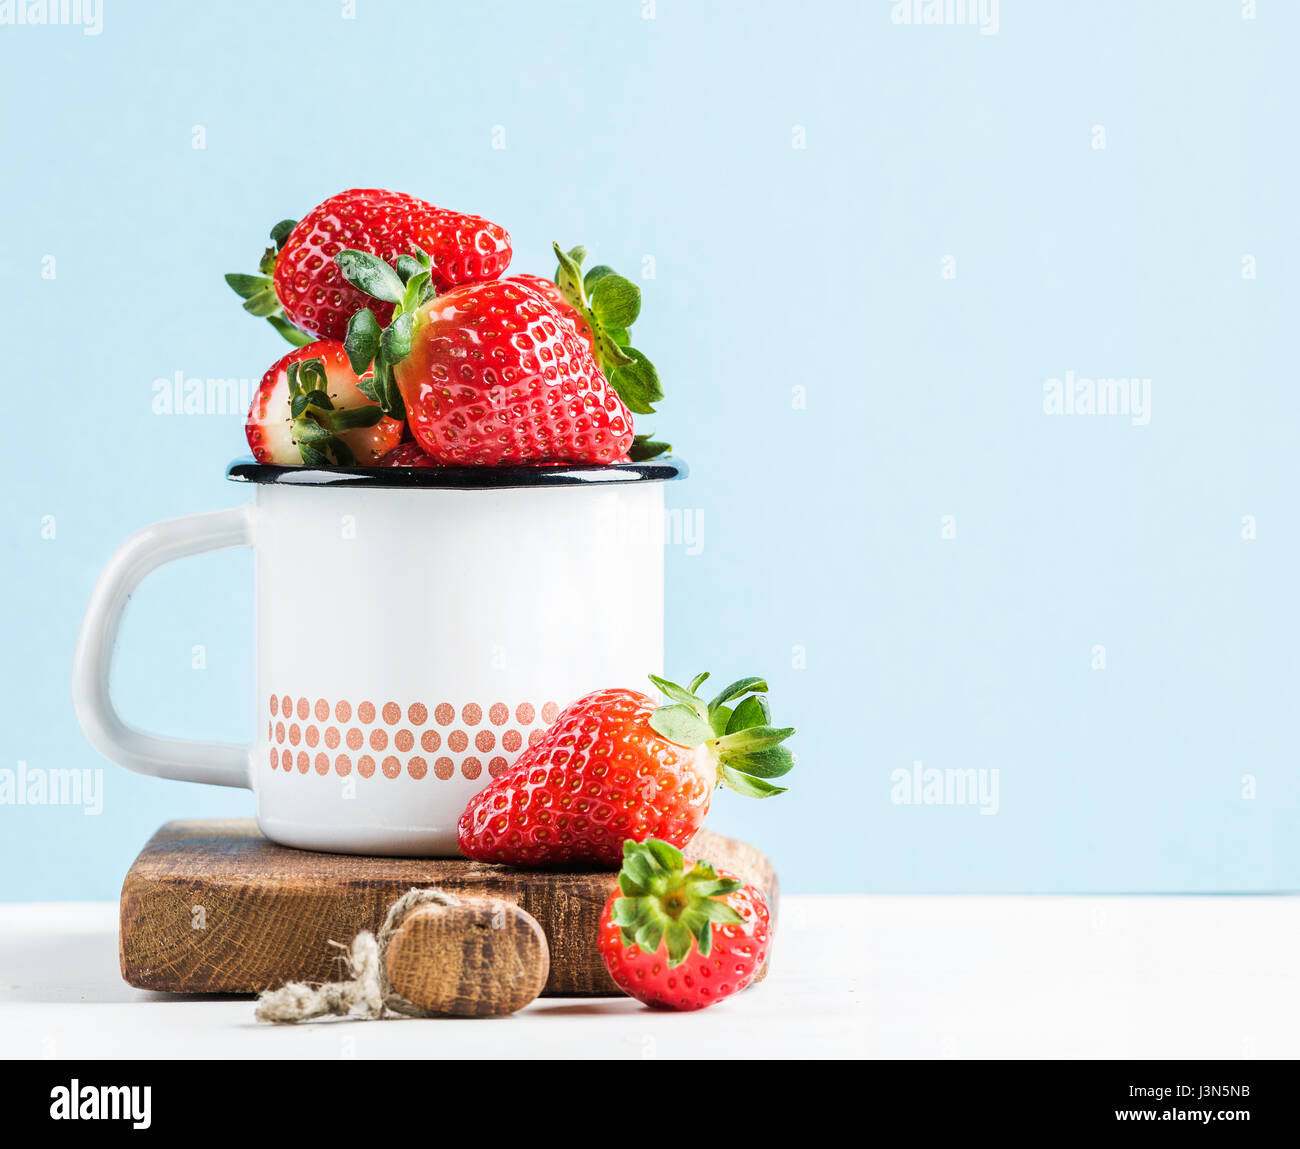 Fresh ripe red strawberries in country style enamel mug on rustic wooden board, pastel light blue background - Stock Image